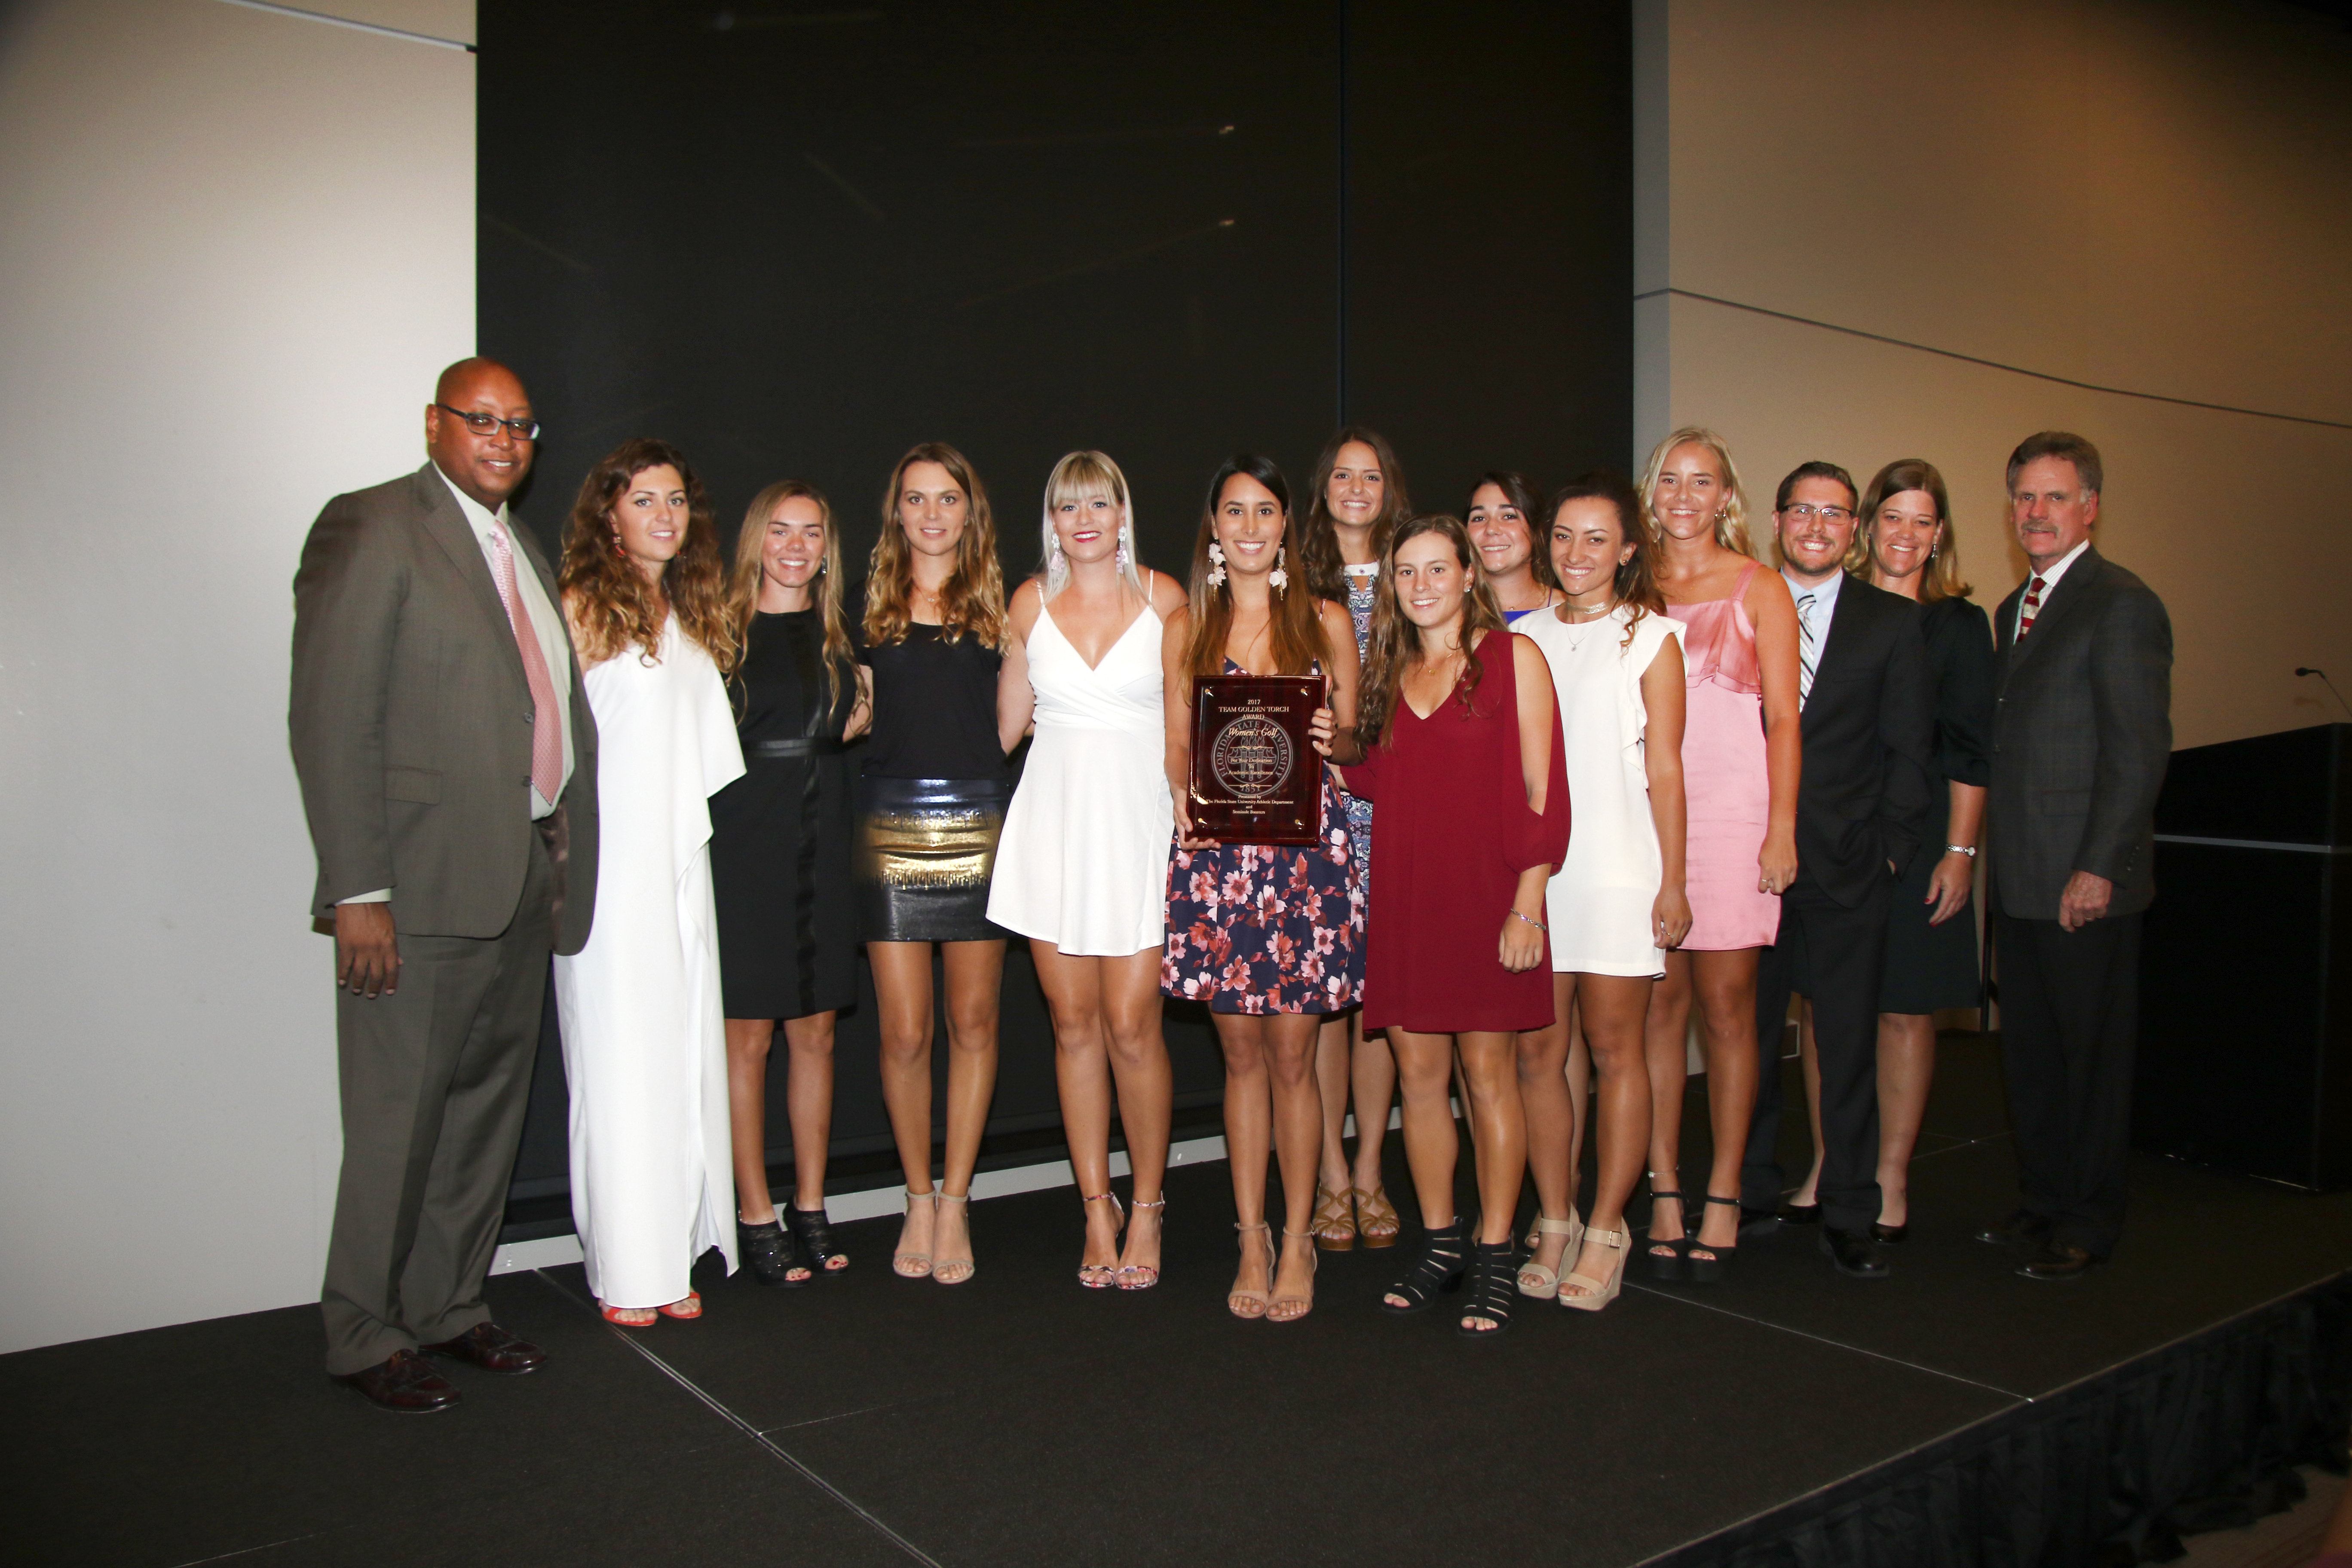 PHOTOS: Golden Torch Honors FSU's Best